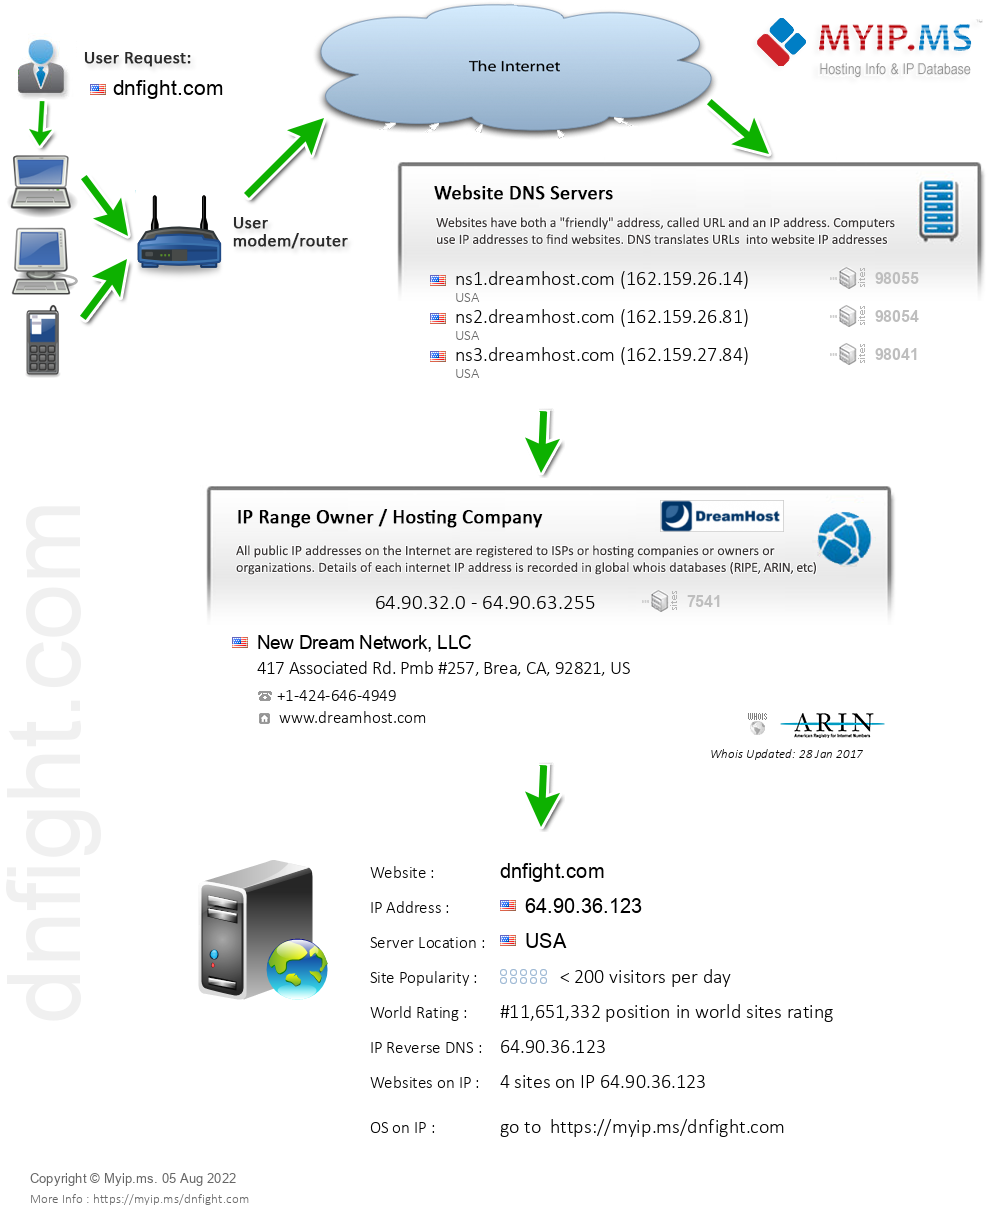 Dnfight.com - Website Hosting Visual IP Diagram